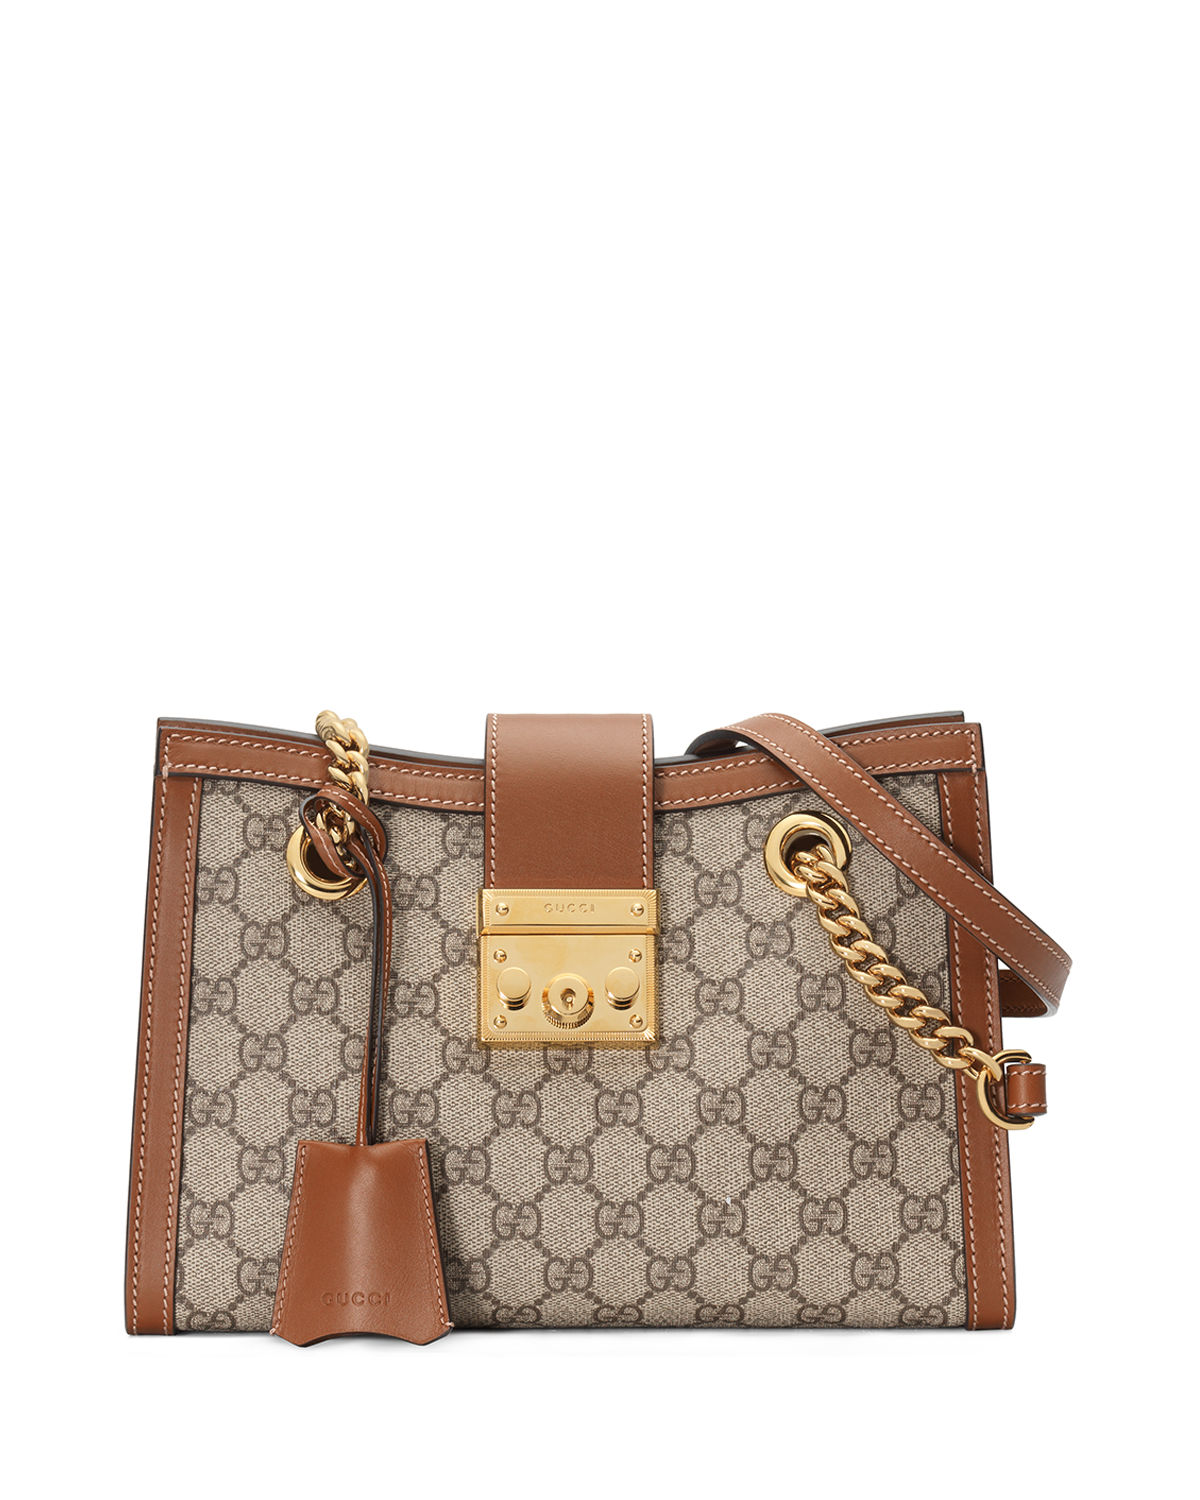 76ffd1048e75 Gucci Padlock Small Gg Supreme Canvas Shoulder Bag | Stanford Center ...